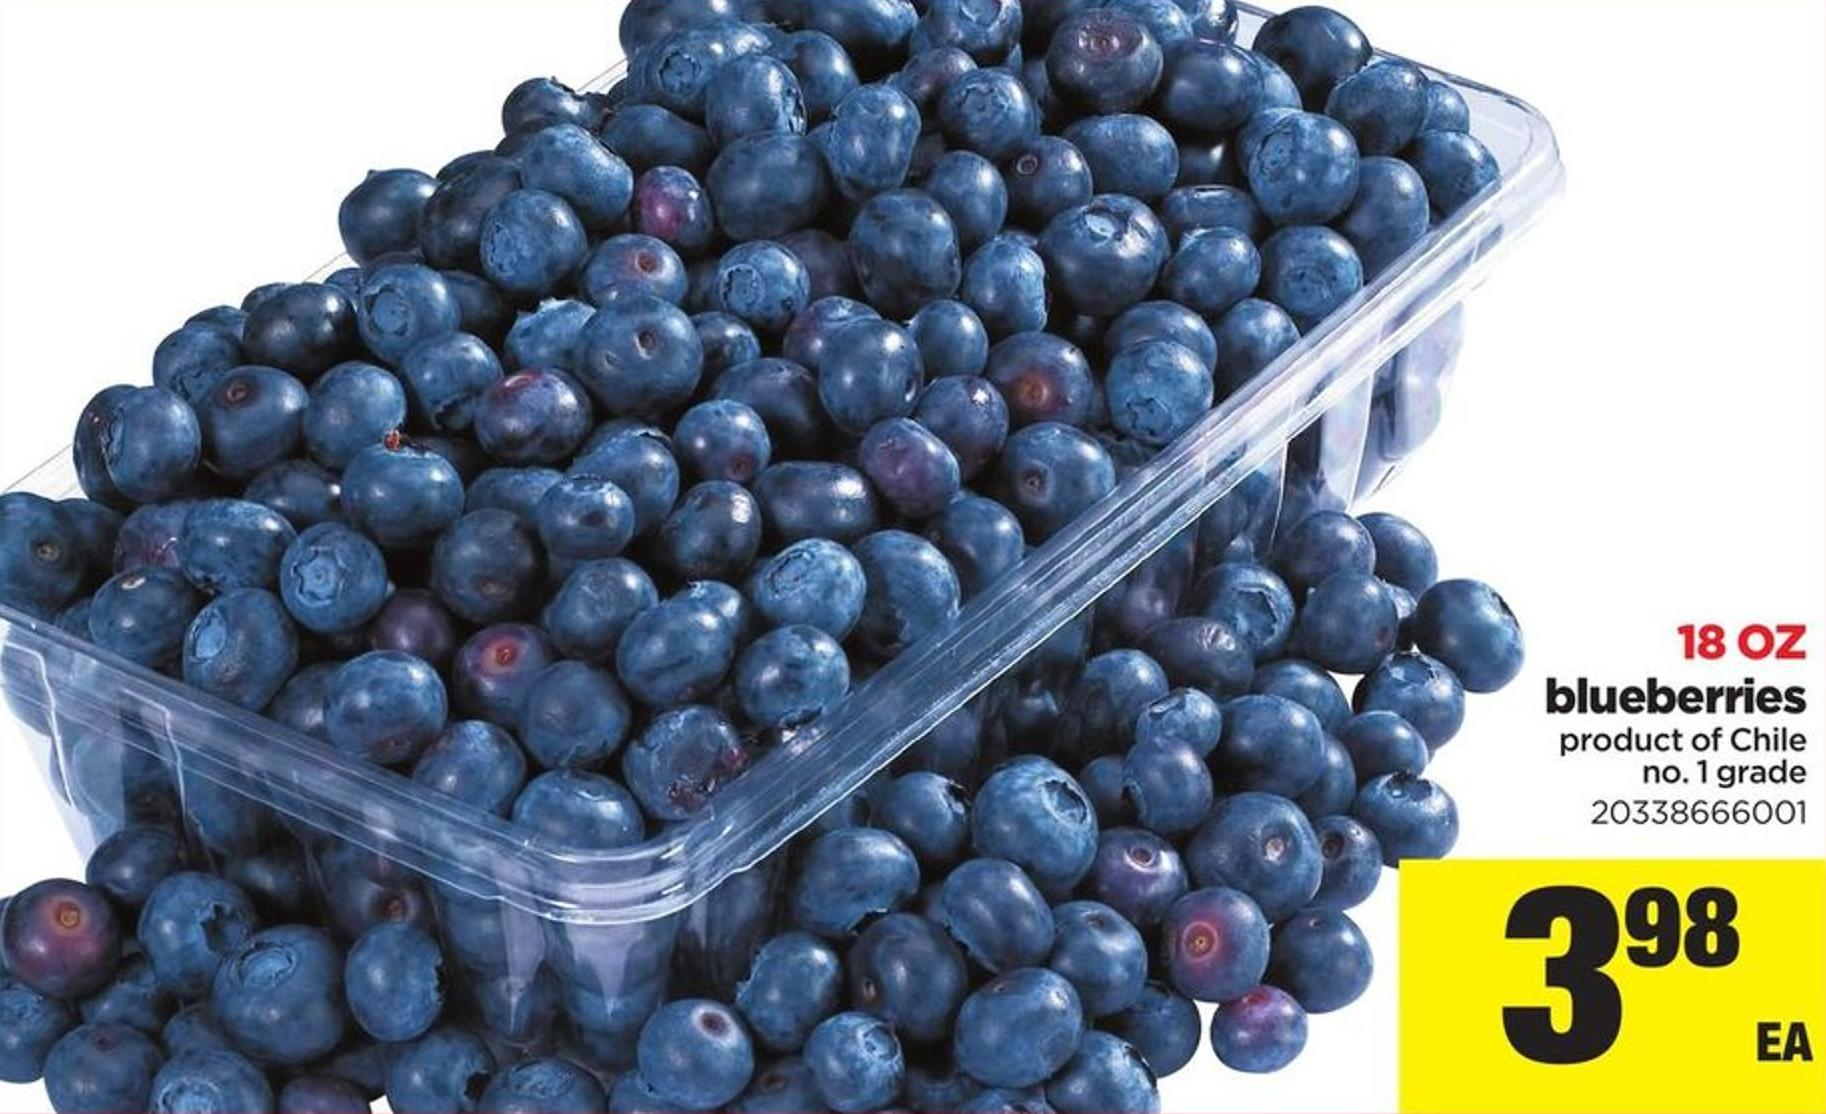 Blueberries 18 Oz